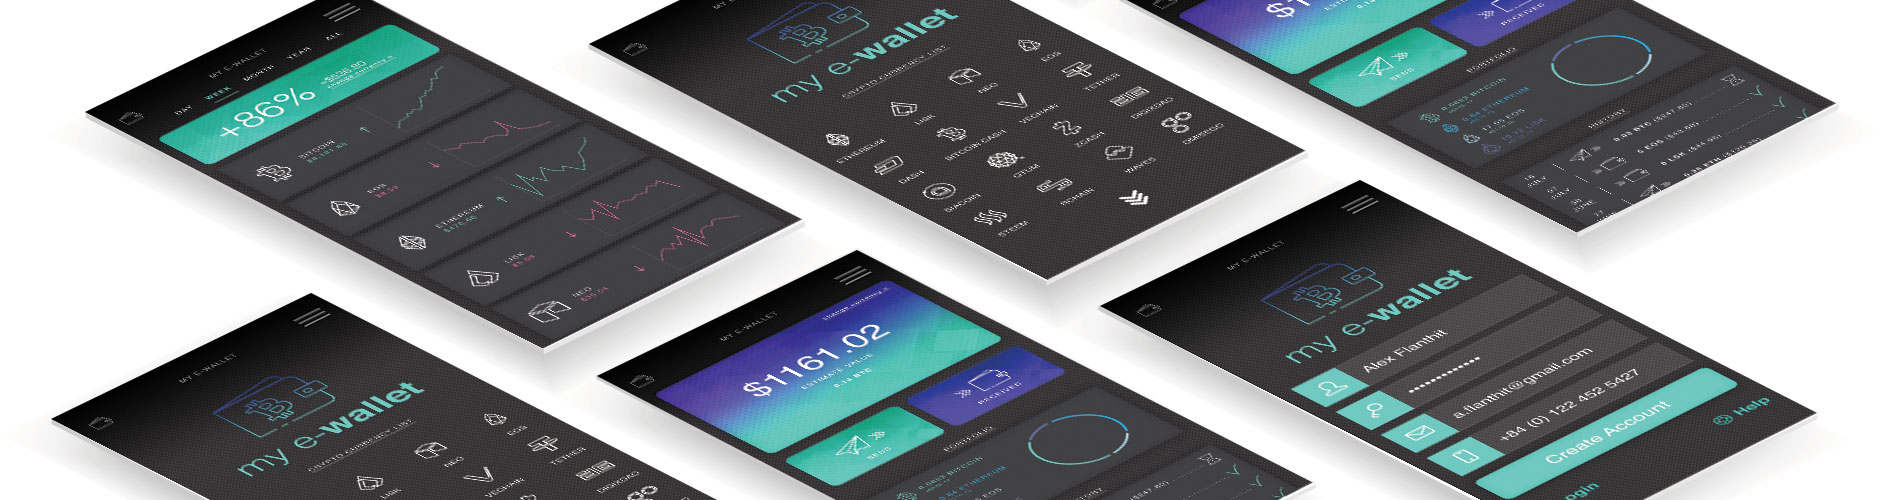 Mockup of E-Wallet App on iPhone screen, designed by whatzhat design agency. Crypto currency saldo check